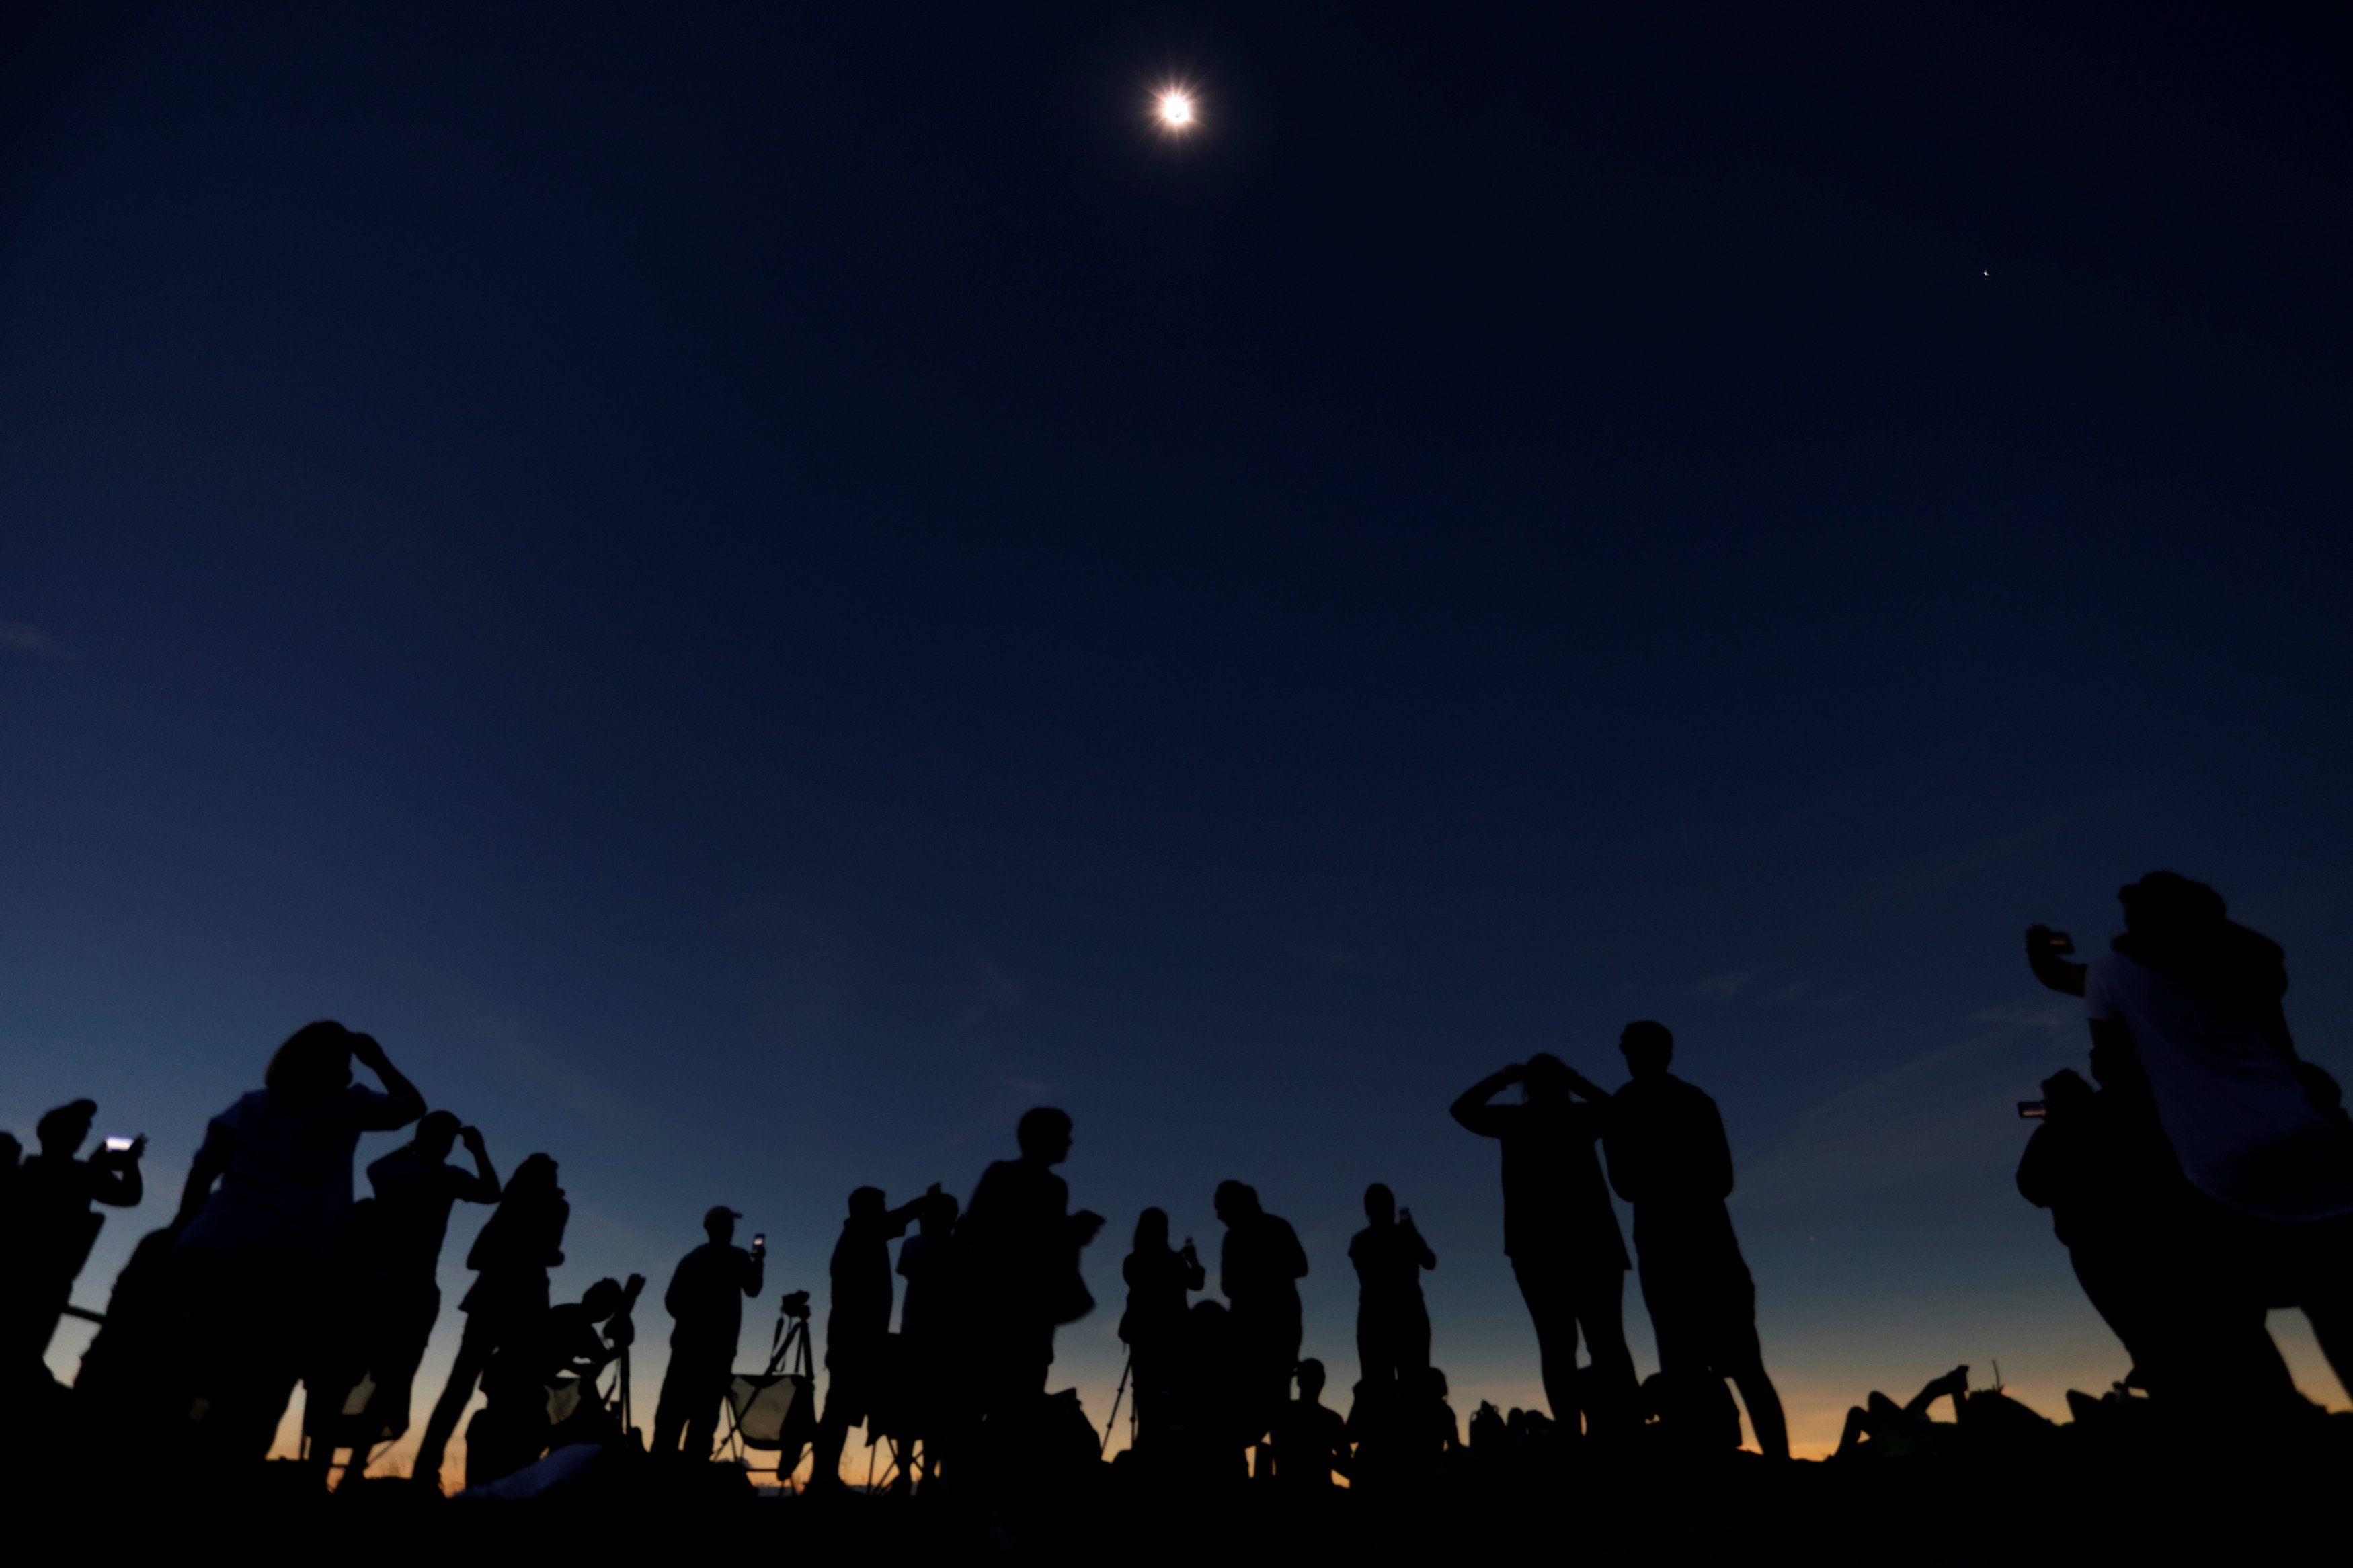 "People watch the total solar eclipse from Clingmans Dome, which at 6,643 feet (2,025m) is the highest point in the Great Smoky Mountains National Park, Tennessee, U.S. August 21, 2017. Location coordinates for this image are 35º33'24"" N, 83º29'46"" W. REUTERS/Jonathan Ernst"